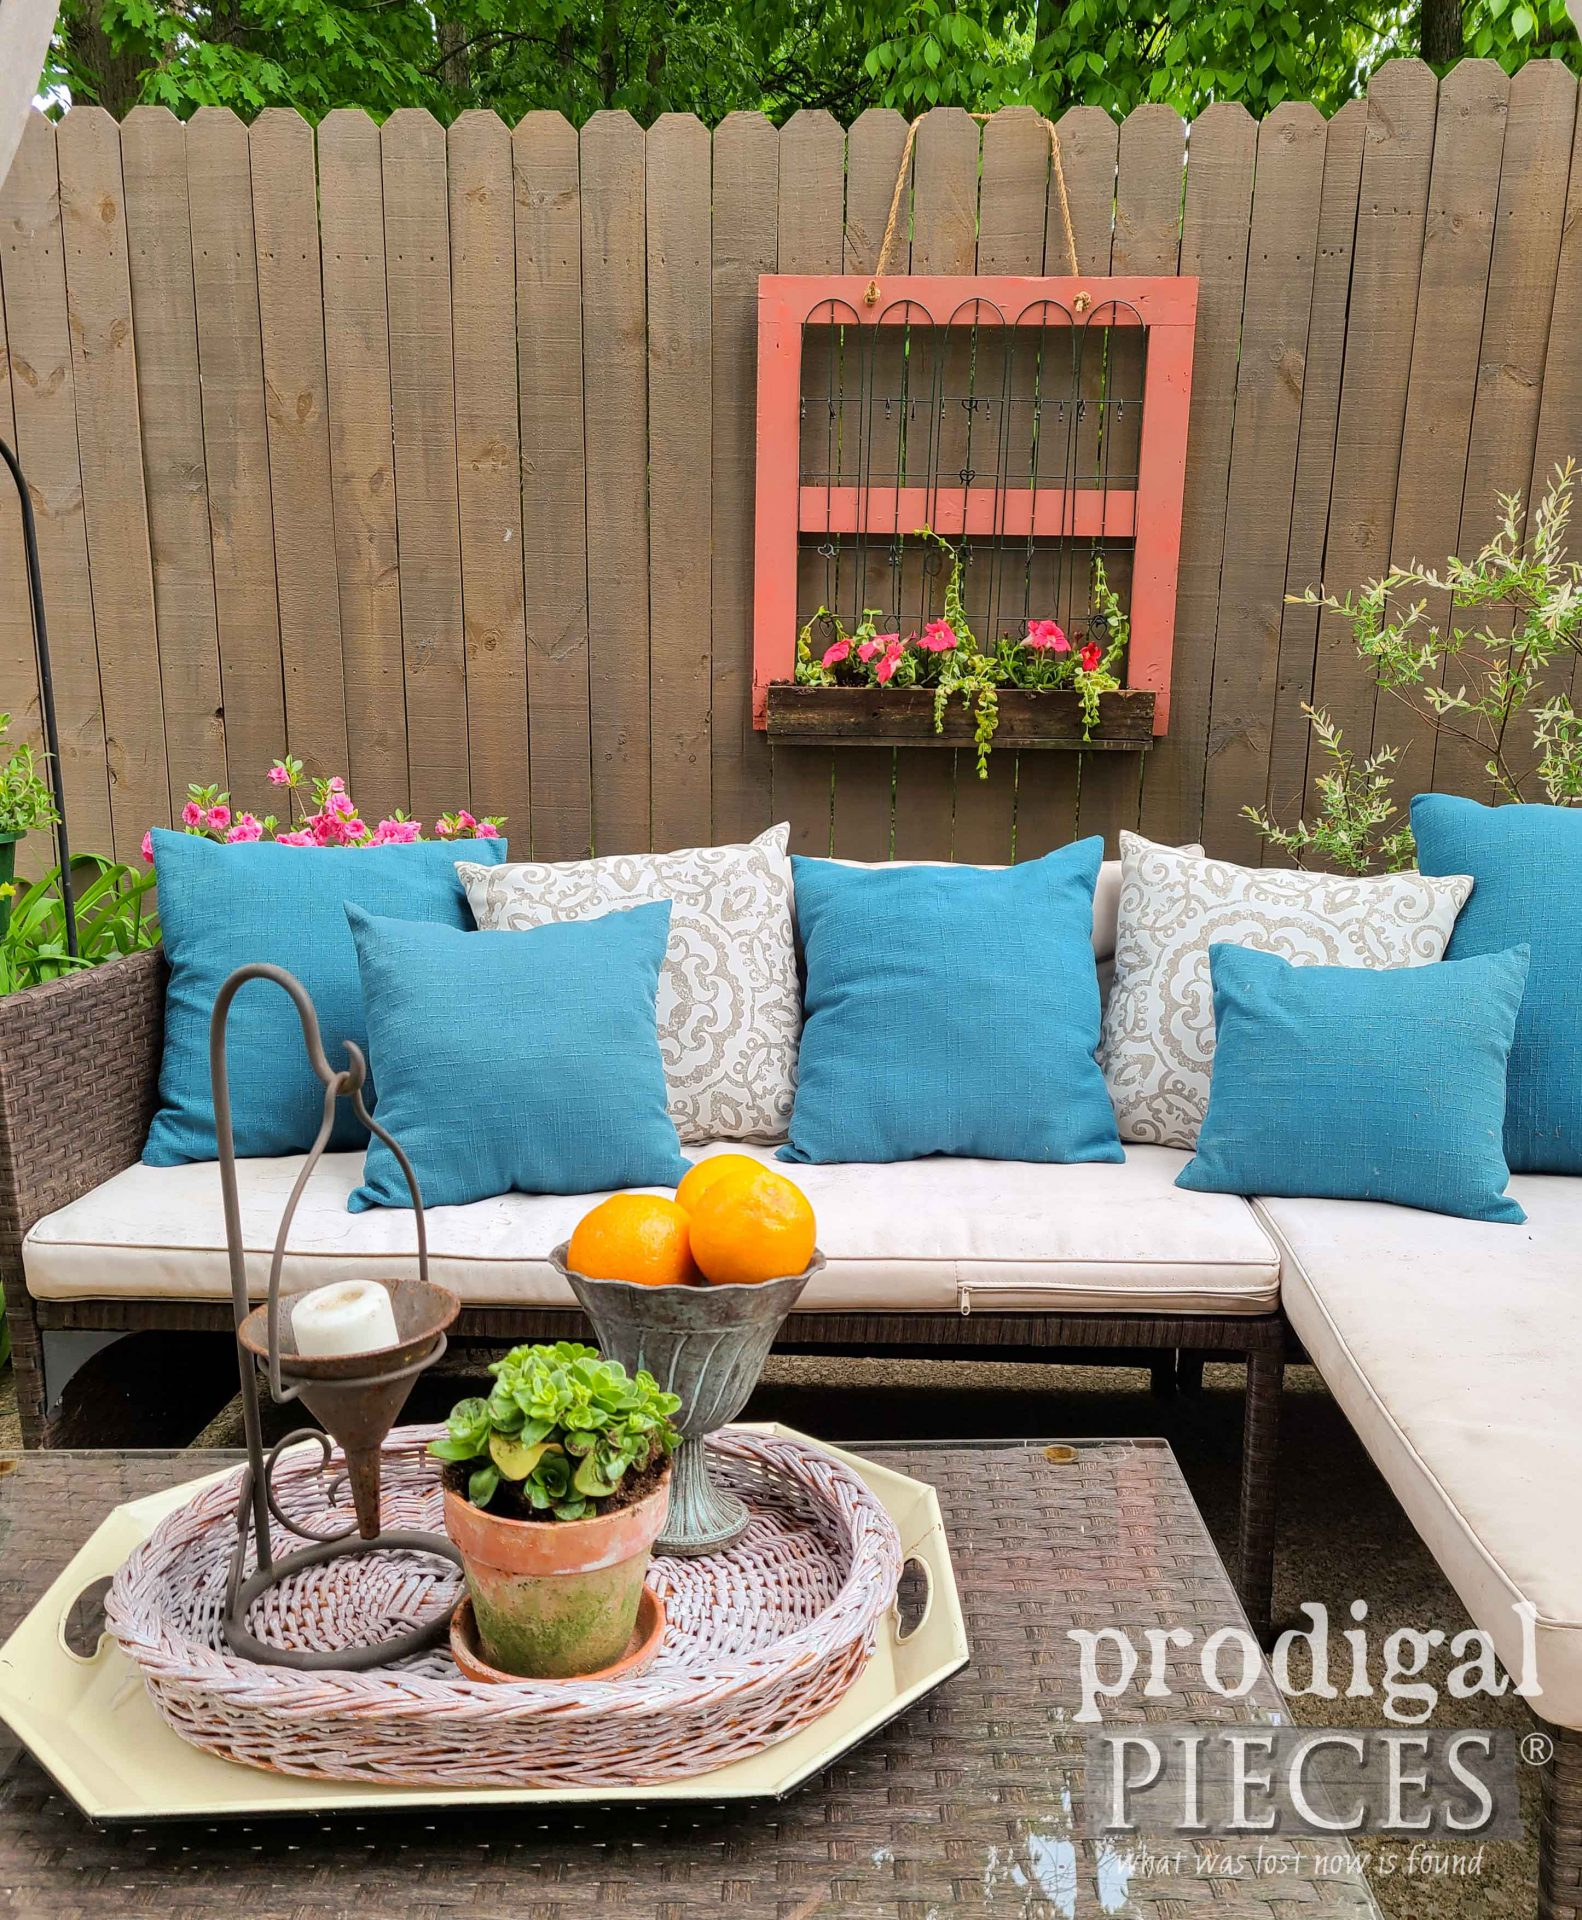 Upcycled Hanging Fence Planter Built by Larissa of Prodigal Pieces | prodigalpieces.com #prodigalpieces #garden #home #flowers #homedecor